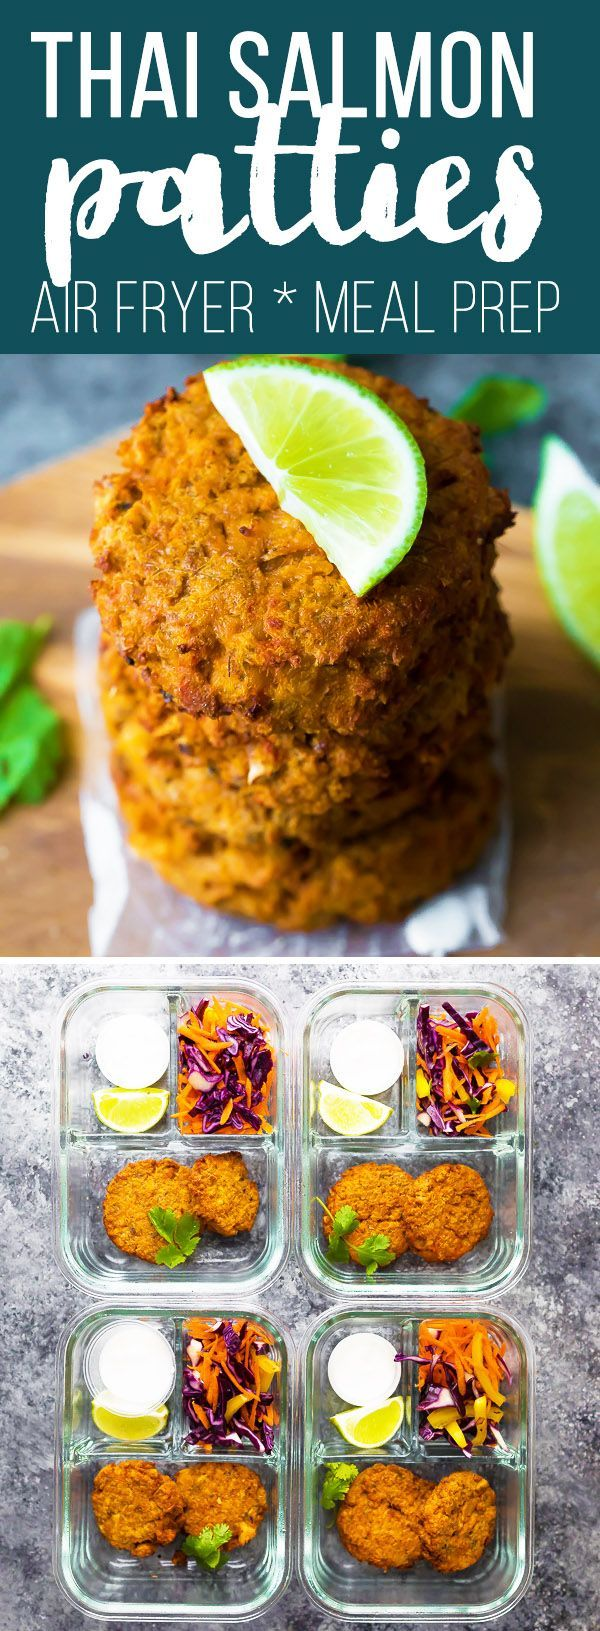 These easy Thai Salmon Patties can be prepped ahead and frozen for an easy dinner recipe. Thaw and cook in the frying pan or in an air fryer for crispy salmon patties with a punch of spicy Thai curry flavor! canned salmon patties, air fryer salmon patties, salmon patties recipe #sweetpeasandsaffron #mealprep #airfryer #salmon